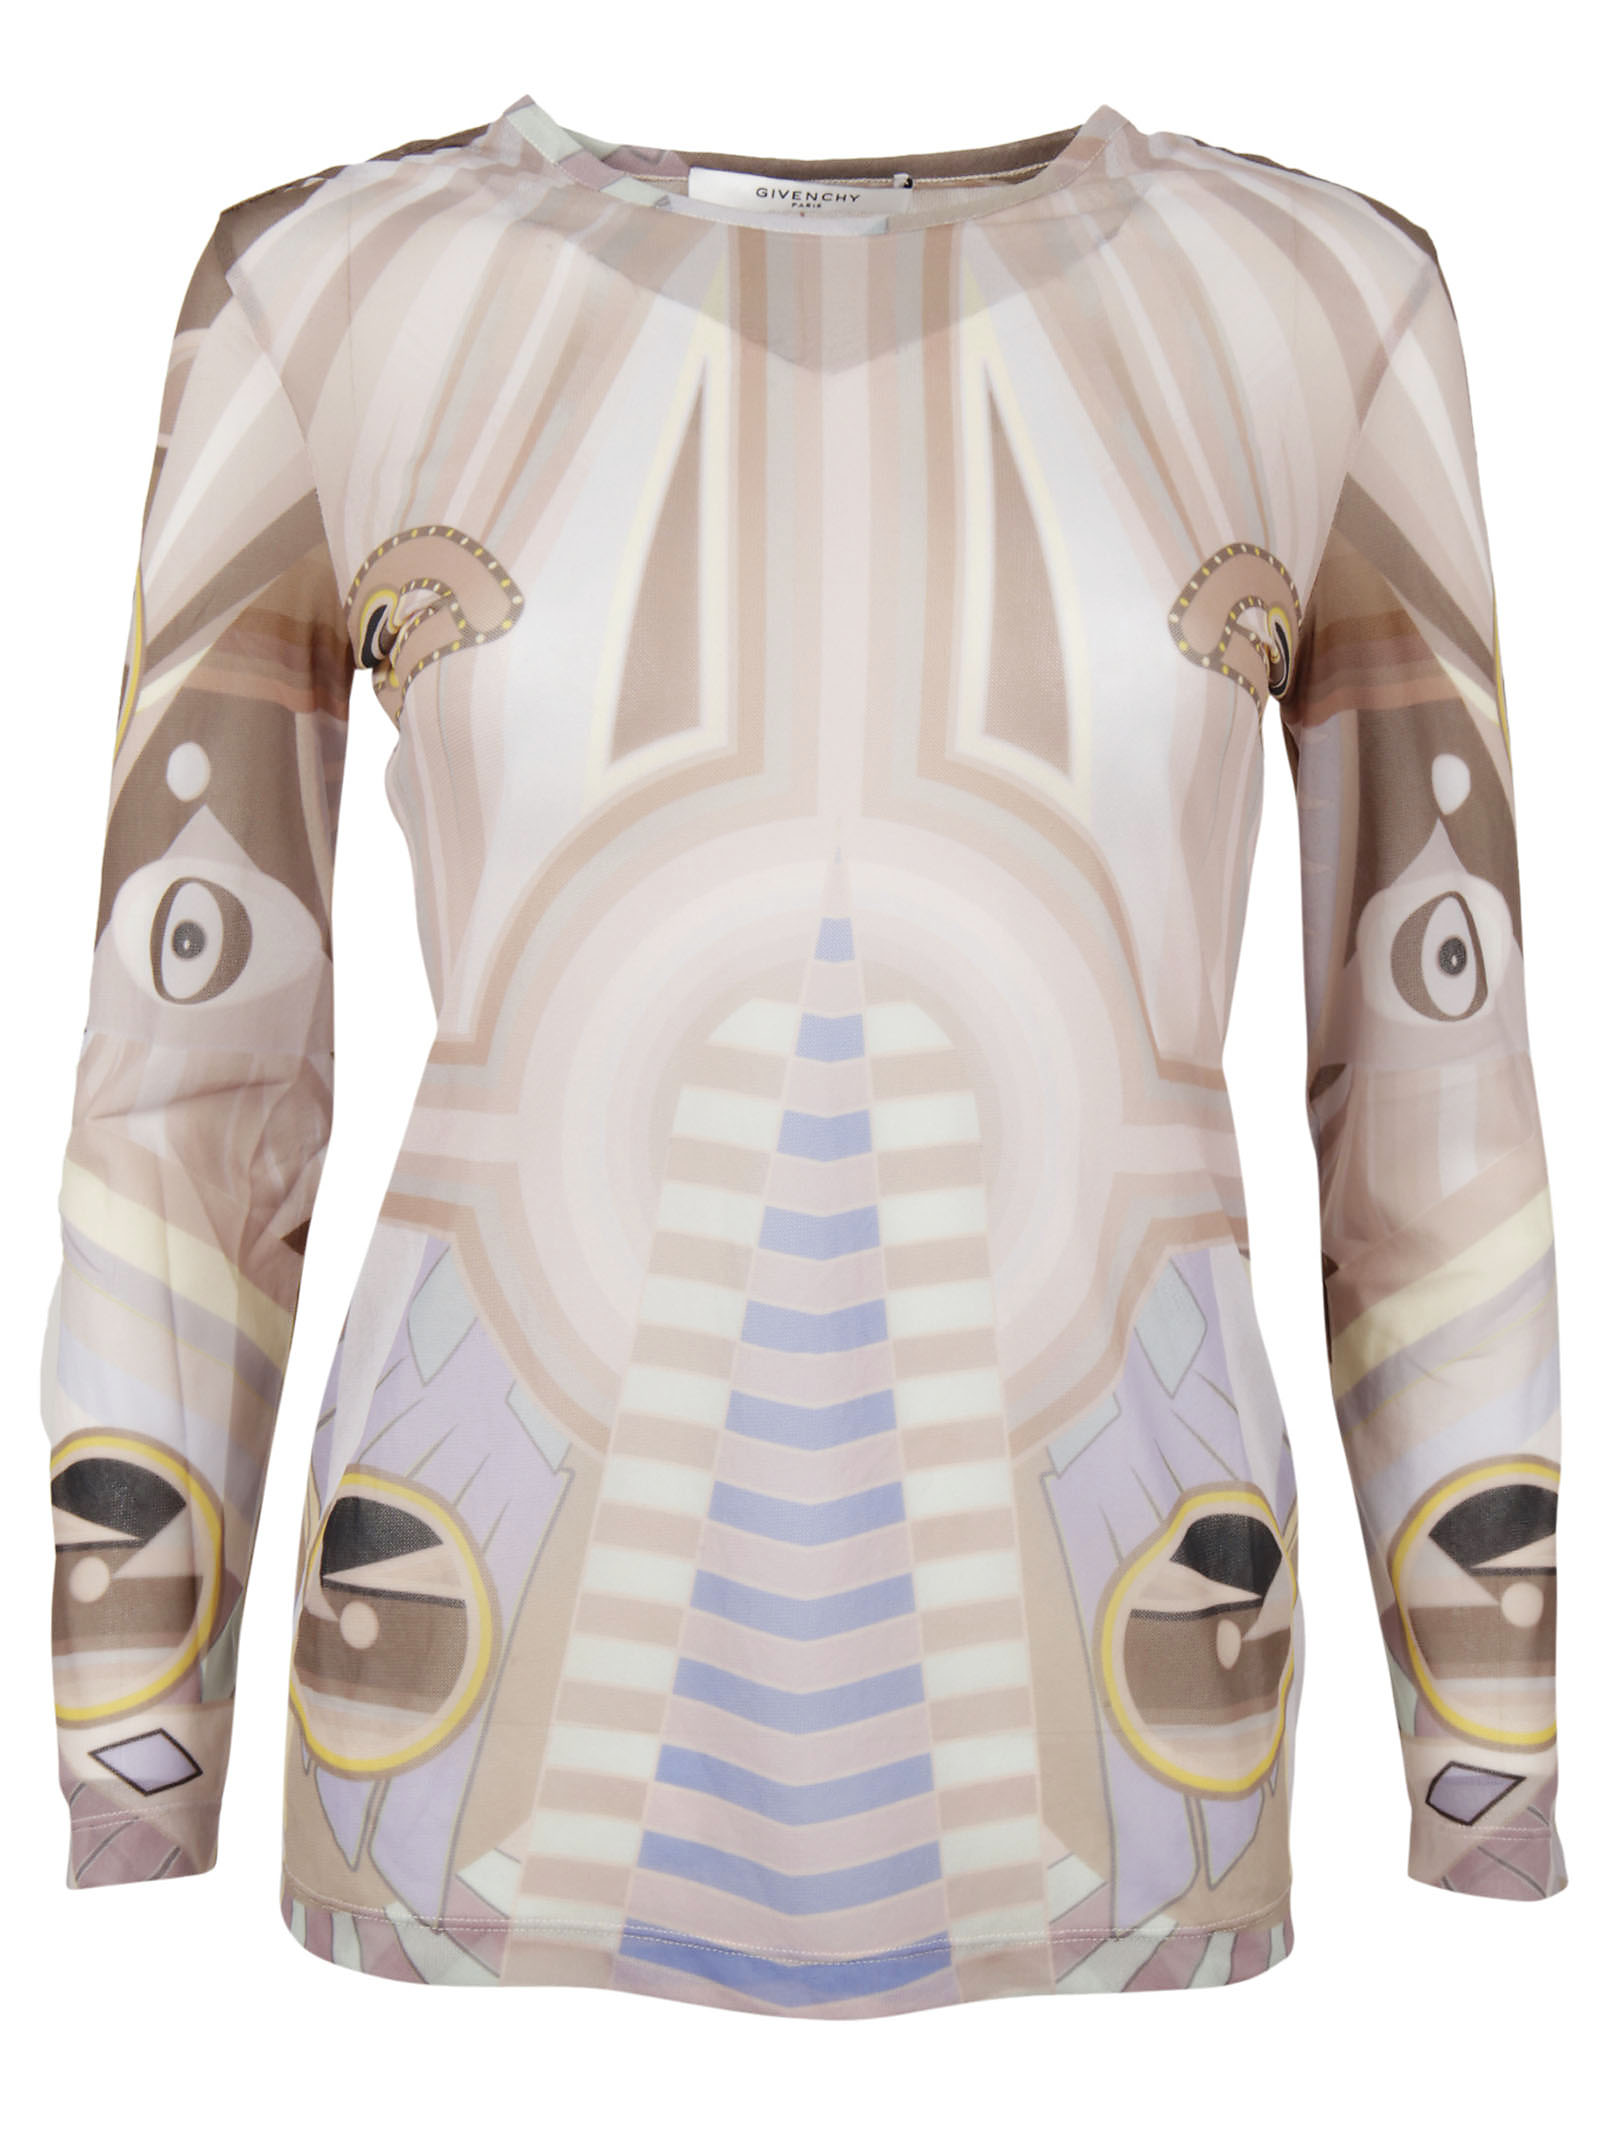 Givenchy Givenchy Stargate Printed Blouse